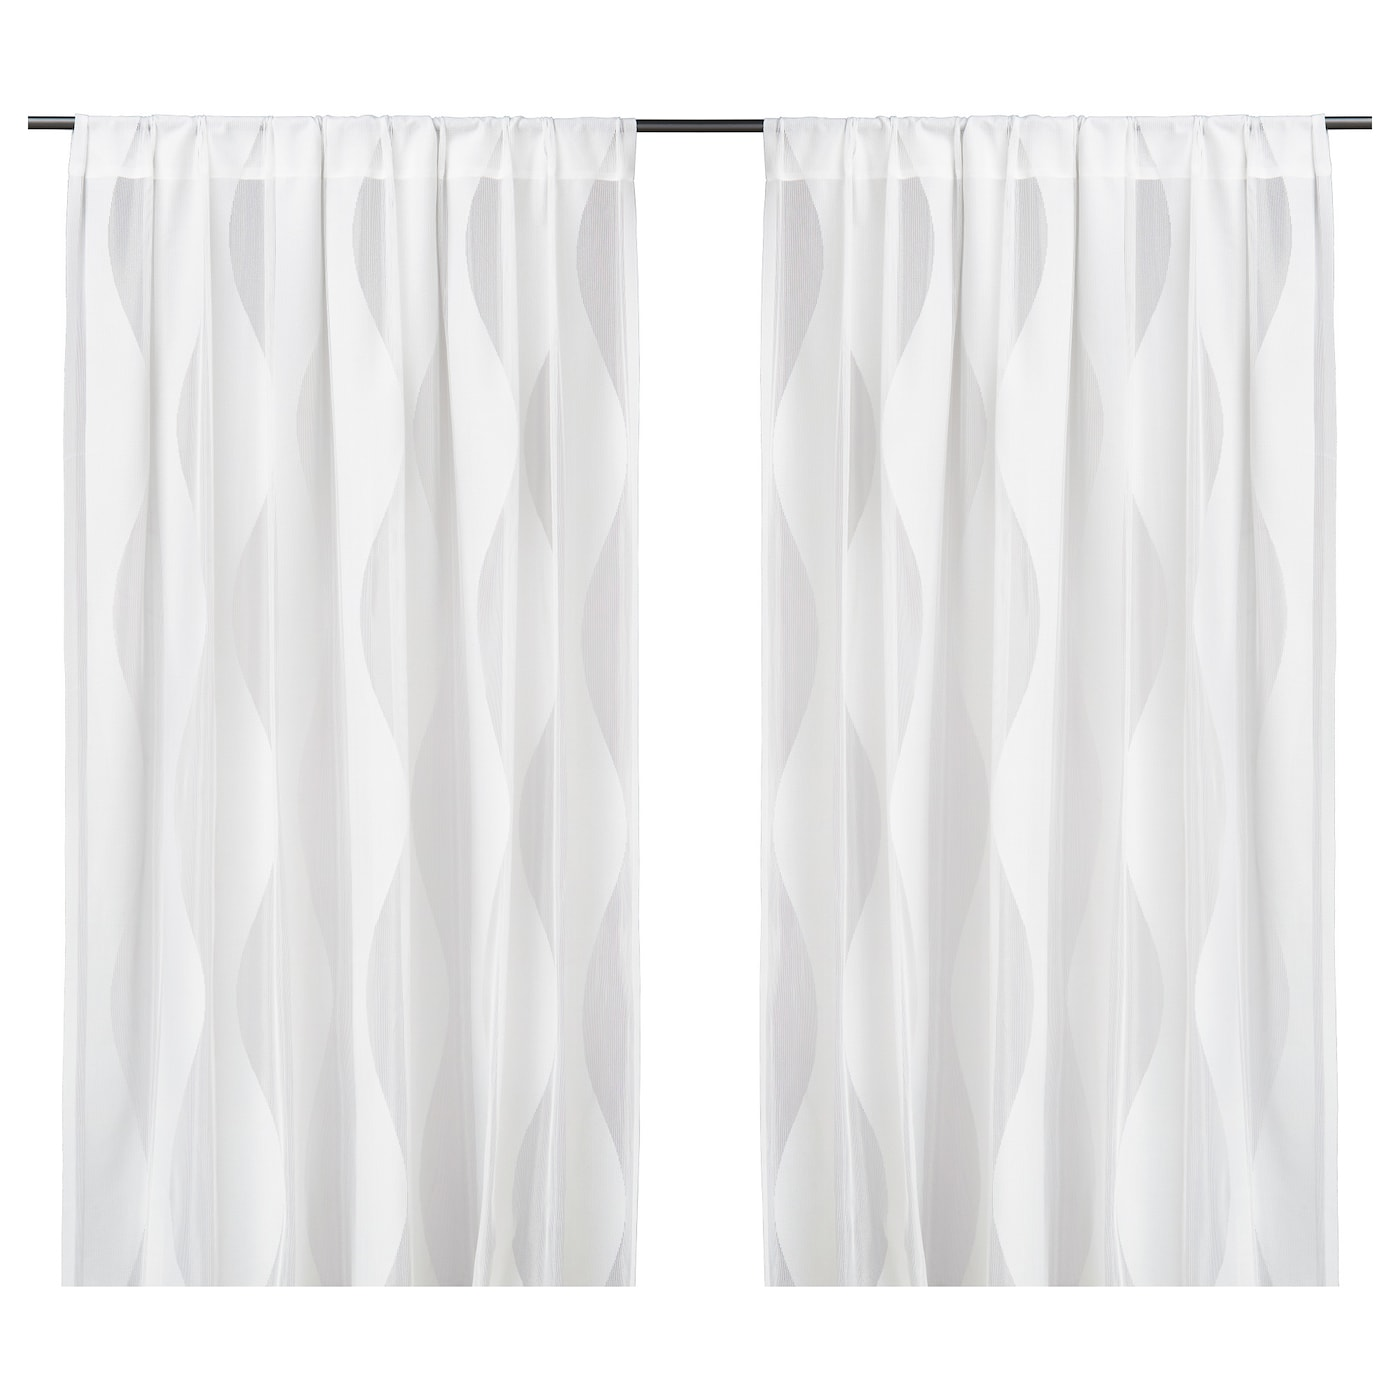 MURRUTA Net curtains, 1 pair White 145x250 cm - IKEA